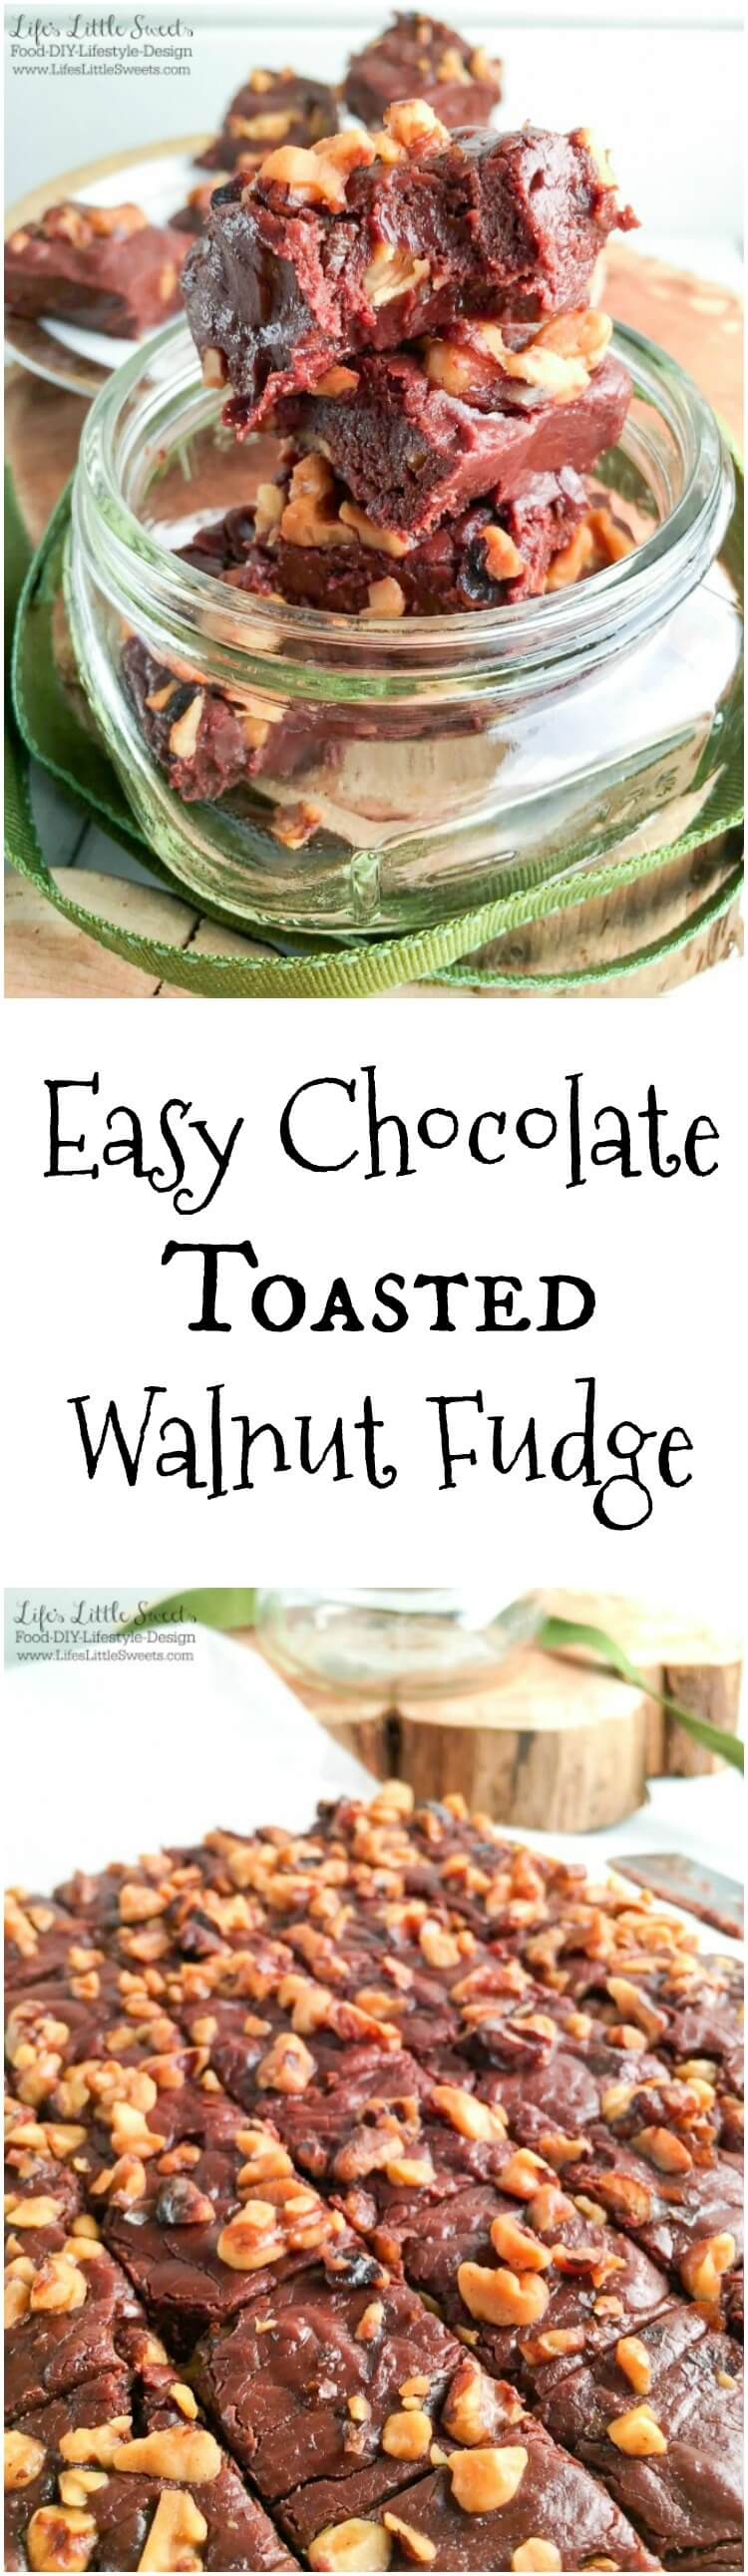 Easy Chocolate Toasted Walnut Fudge - Marshmallow, Chocolate, Walnuts